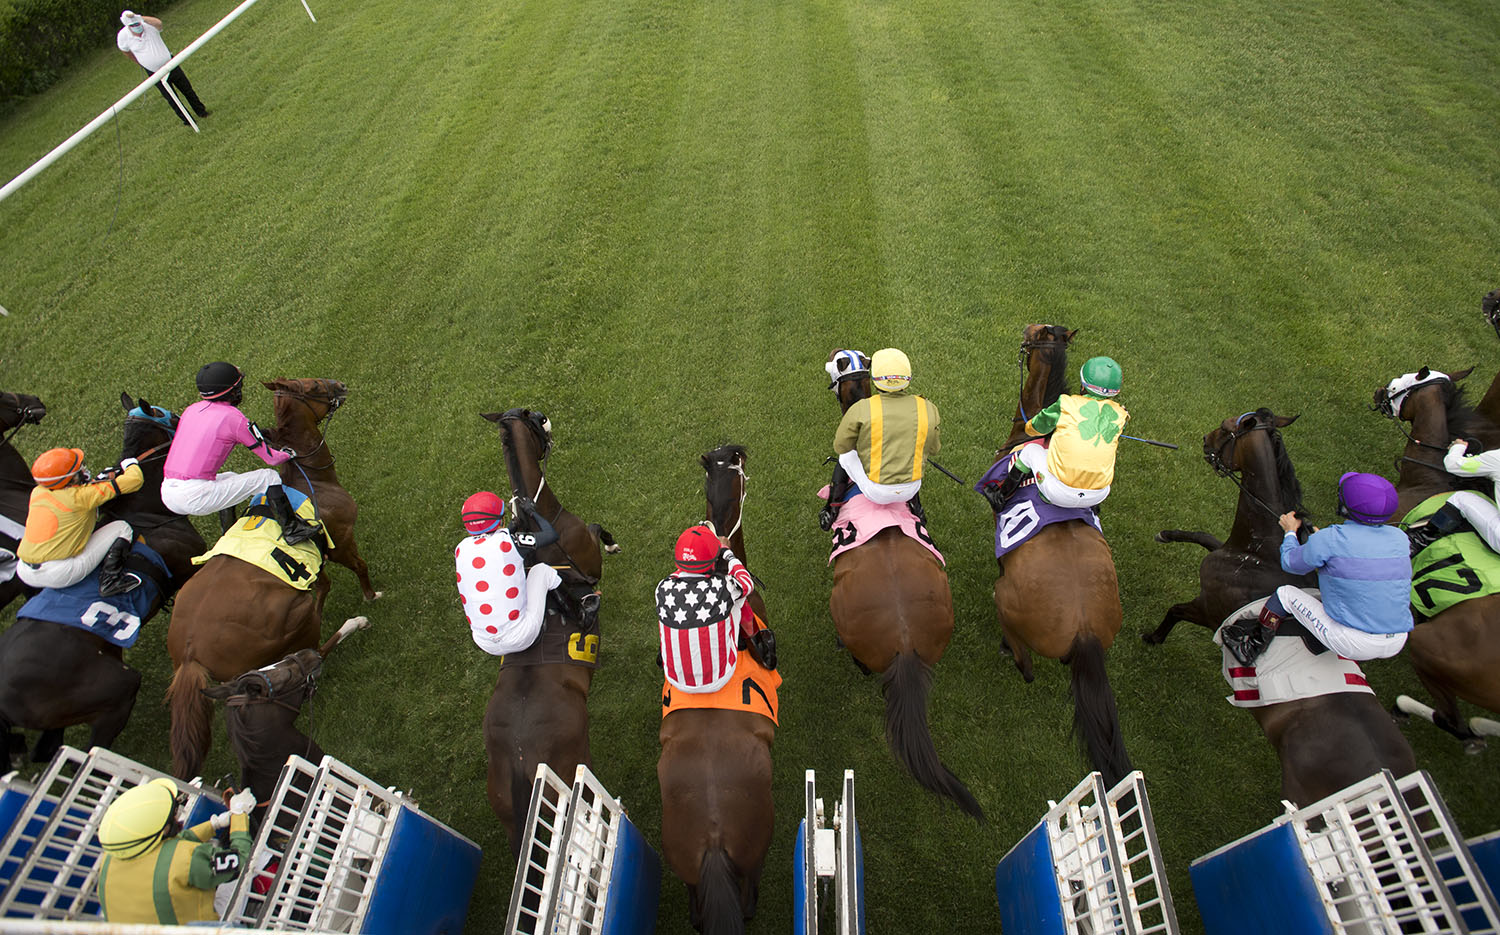 Post time changes for live Thoroughbred racing at Woodbine